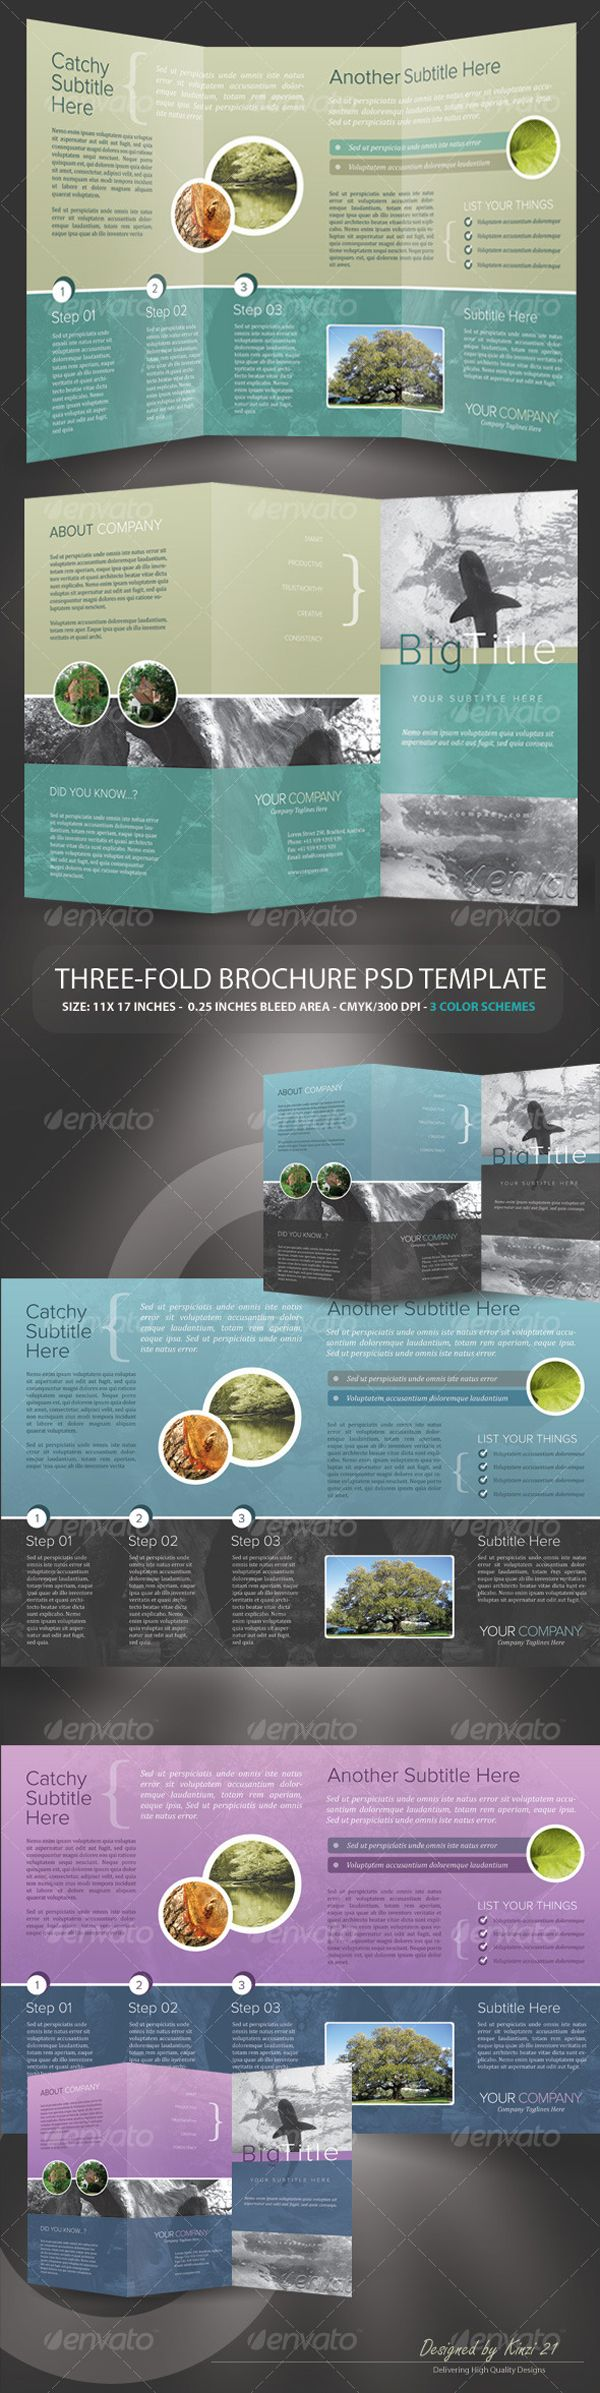 Tri-fold Brochure PSD Template by kinzi21